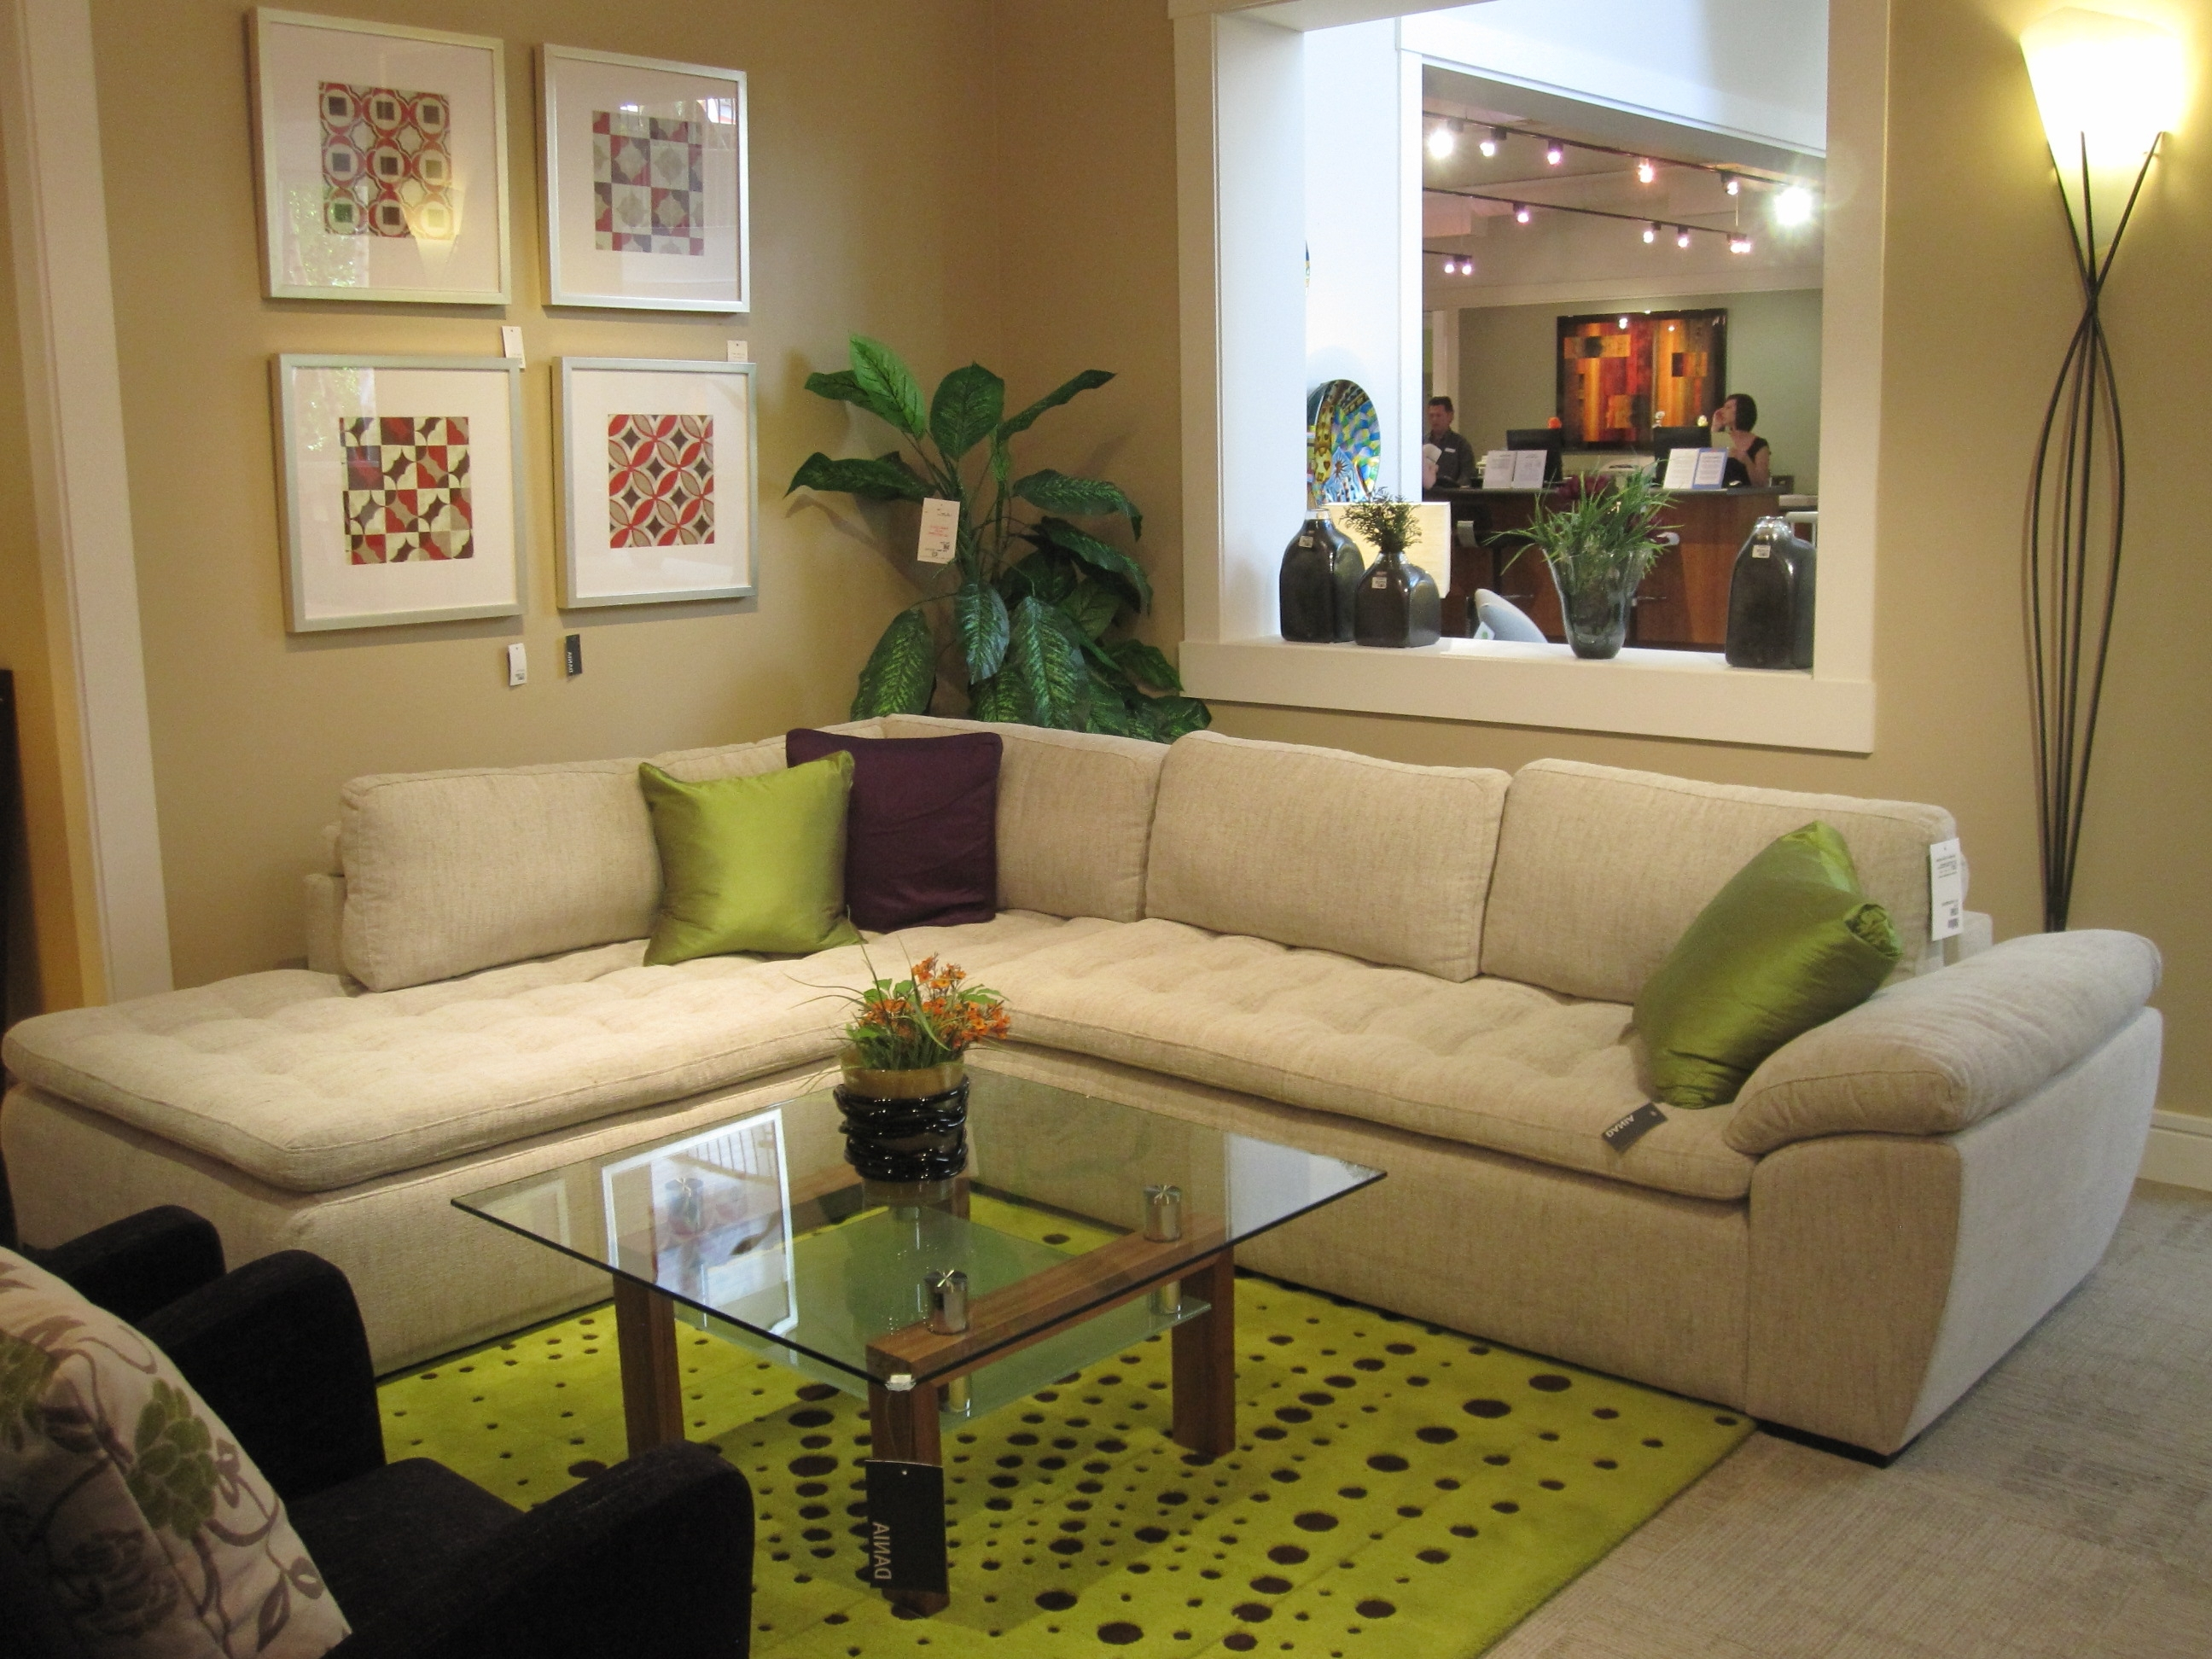 Furniture Shopping July 2011 Sectional Pertaining To 2019 Dania Sectional Sofas (View 9 of 20)